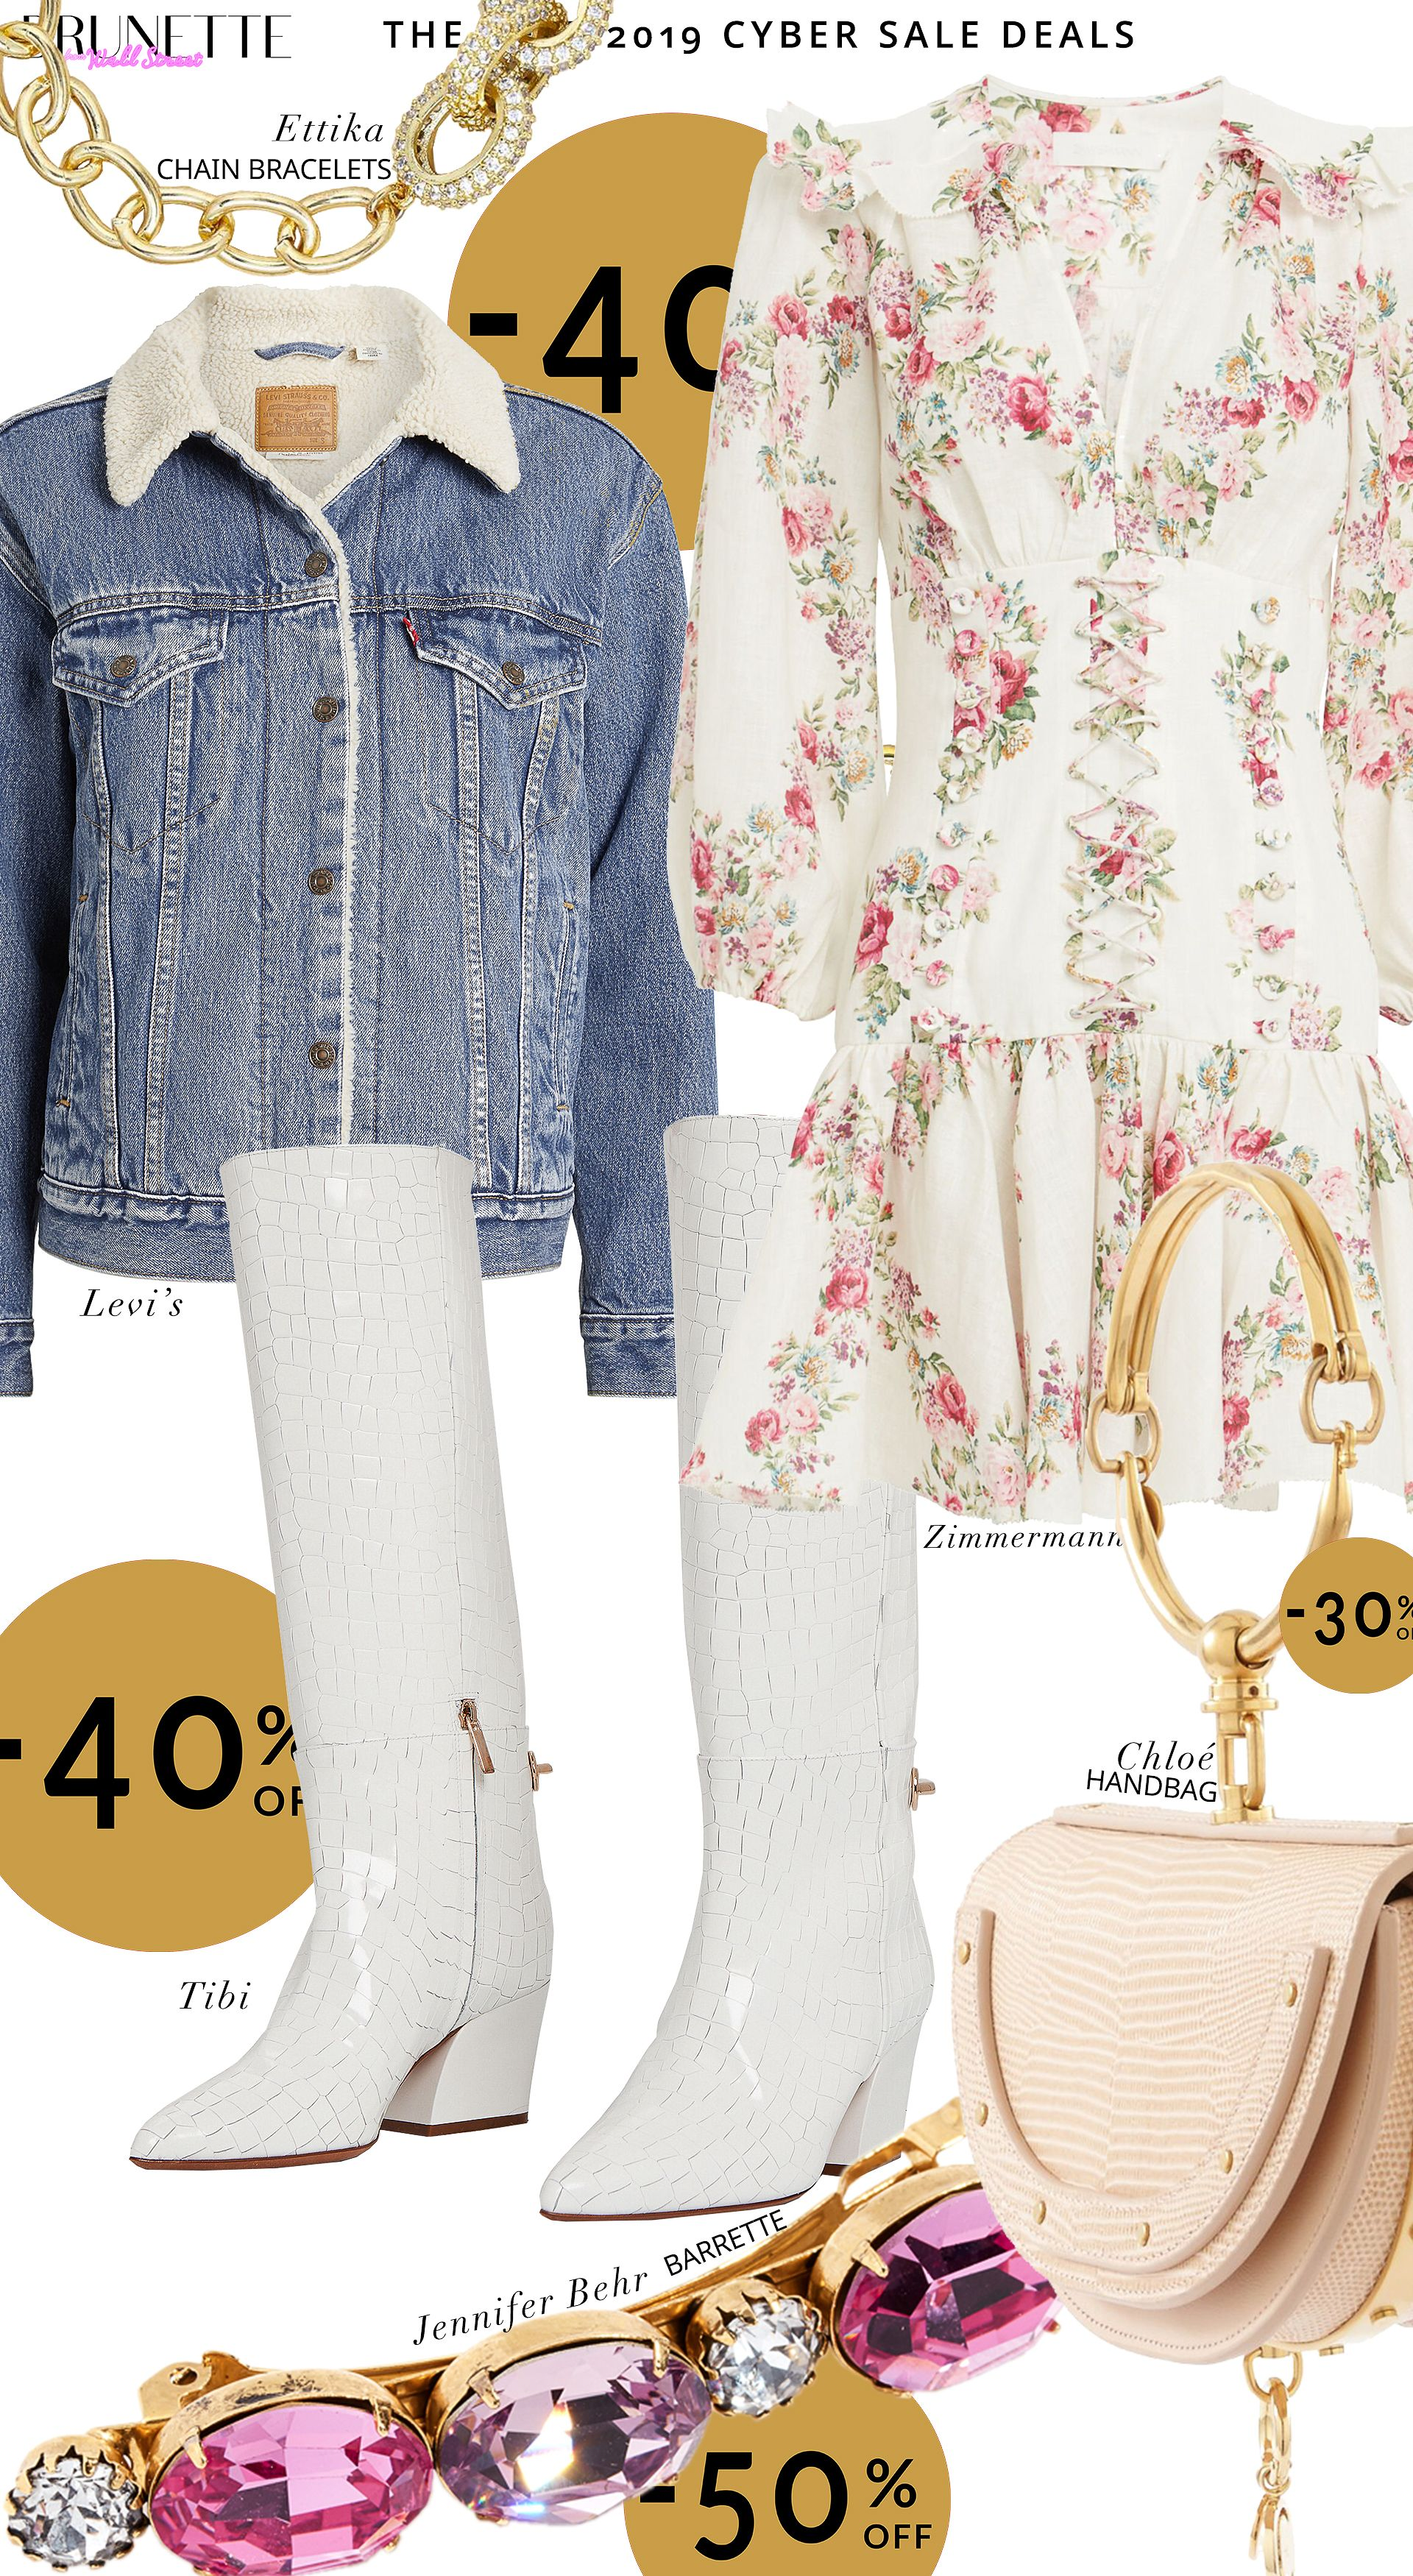 You need to shop from this Cyber Week sale if you have a boho chic style. Just look how pretty that Zimmerman dress is - now 40% off. And how cool that Levi's jacket is. Not mentioning how chic are the Tibi boots. And Chloé Nile bag? Yes, that bag is on sale too! Read it to visit Brunette from Wall Street and find out where to find the best Cyber Week deals on this boho chic look #cybermonday #bestbuy #outfitideas